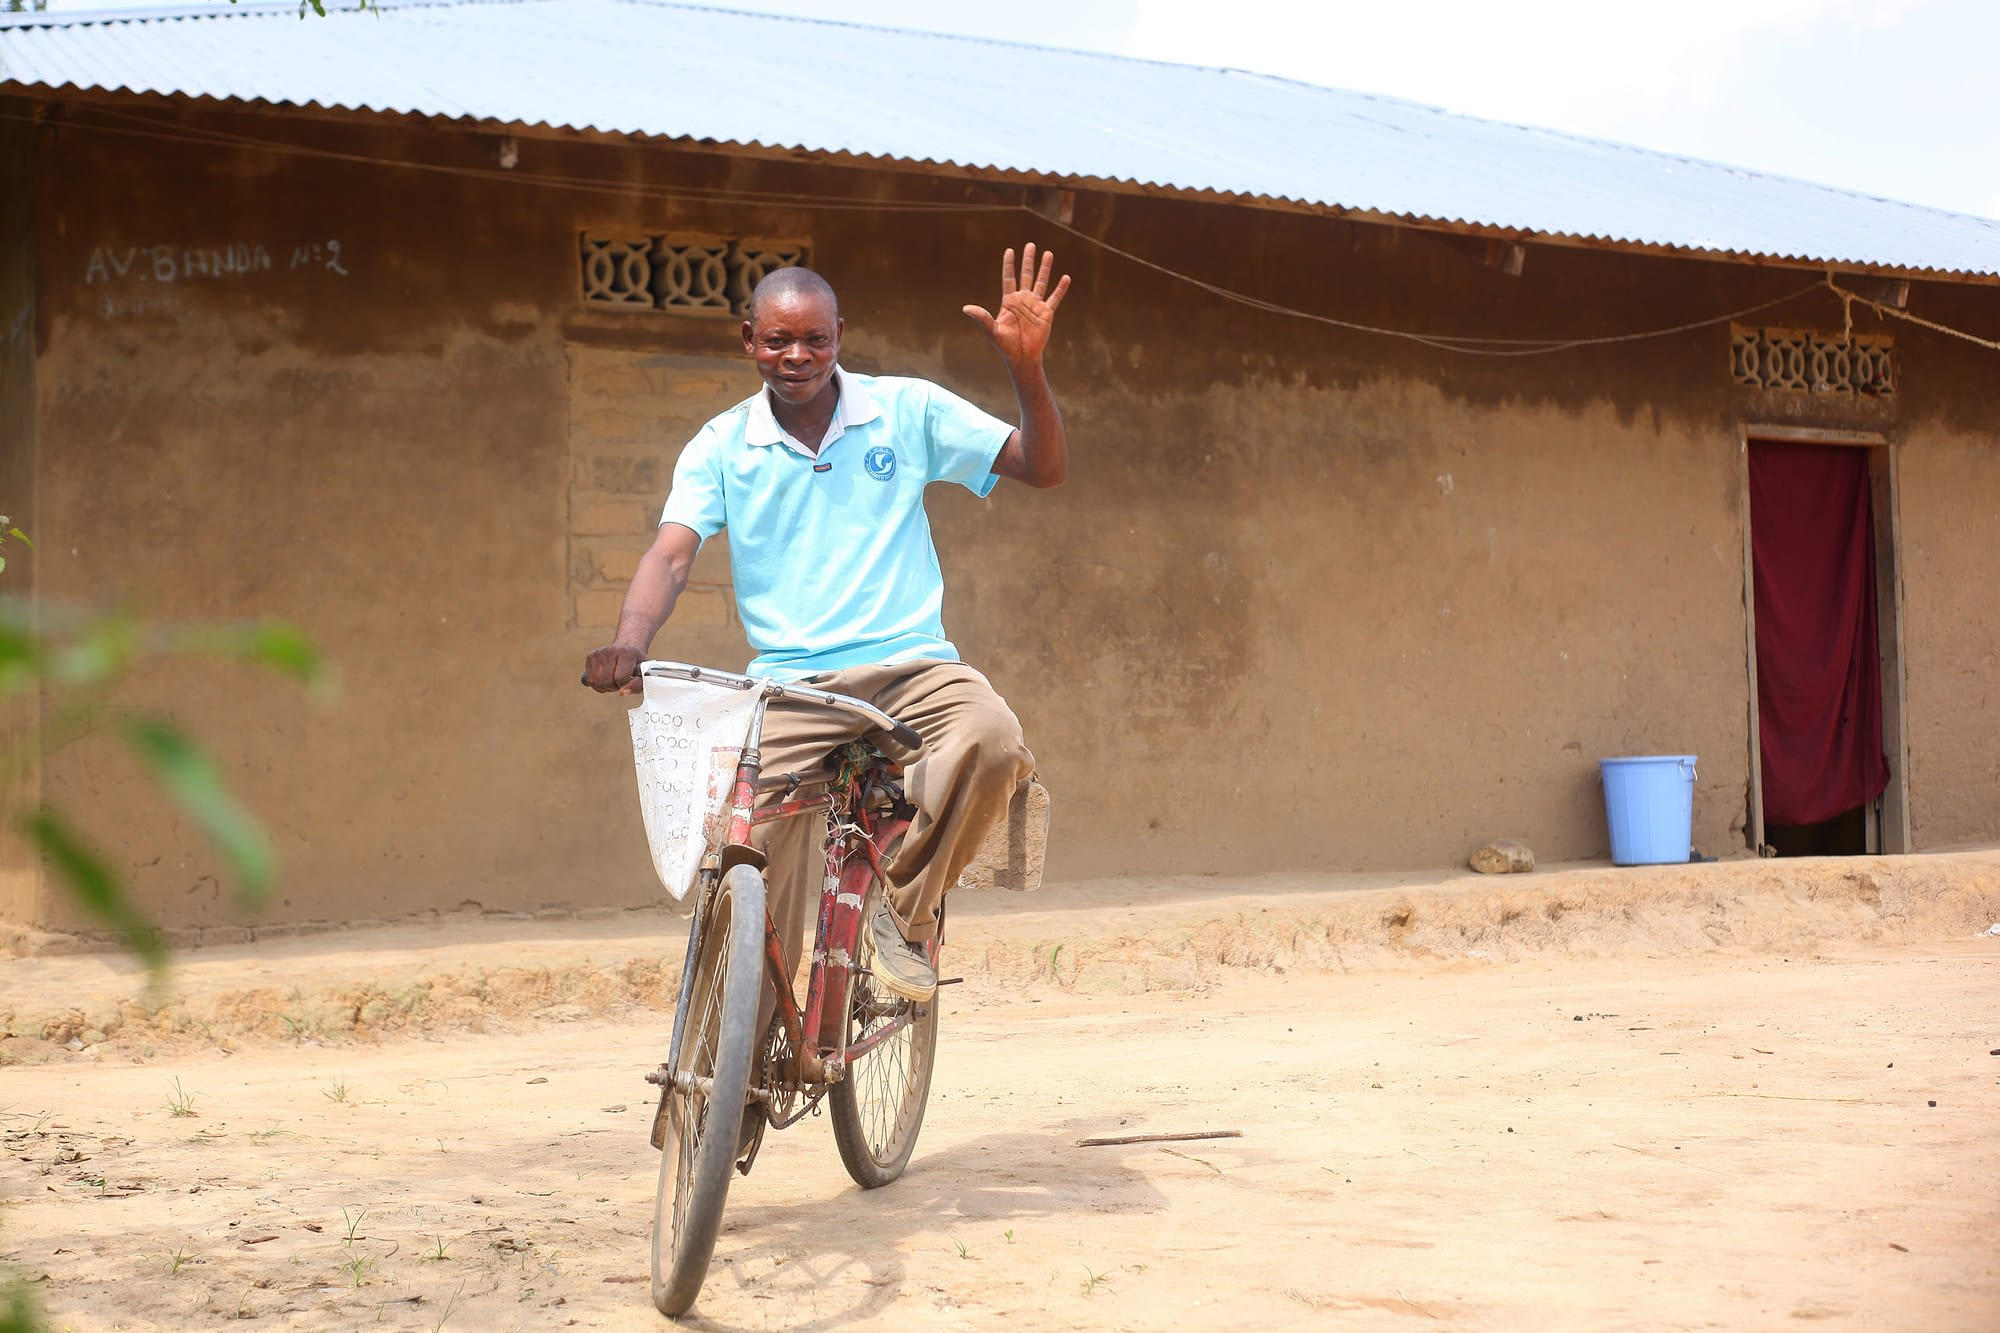 Man riding a bike in rural village